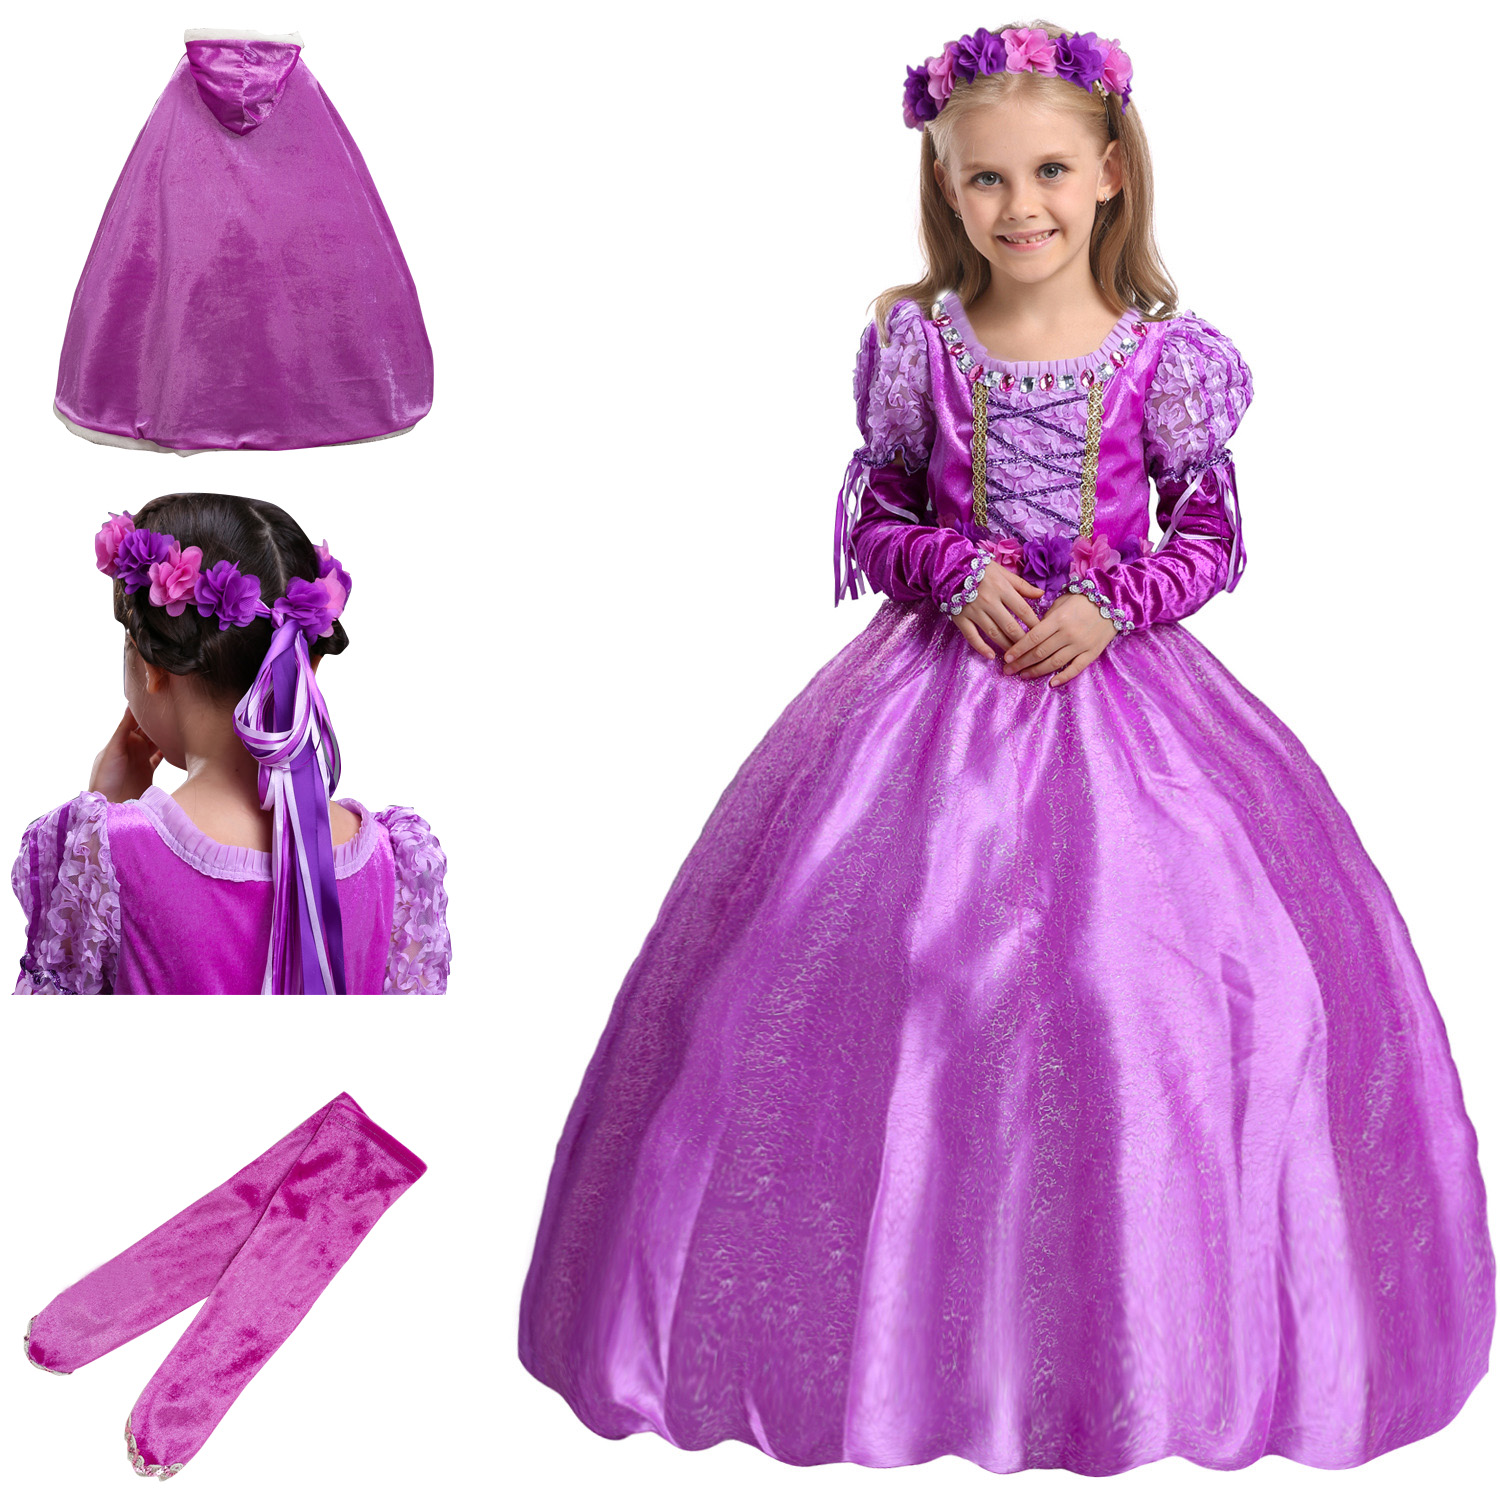 Carnavals Halloween Children Princess Birthday Party Cosplay Winter Girls Cartoon Clothes Rapunzel Fancy Dress Costume Kids 4pcs gothic halloween artificial devil vampire teeth cosplay prop for fancy ball party show